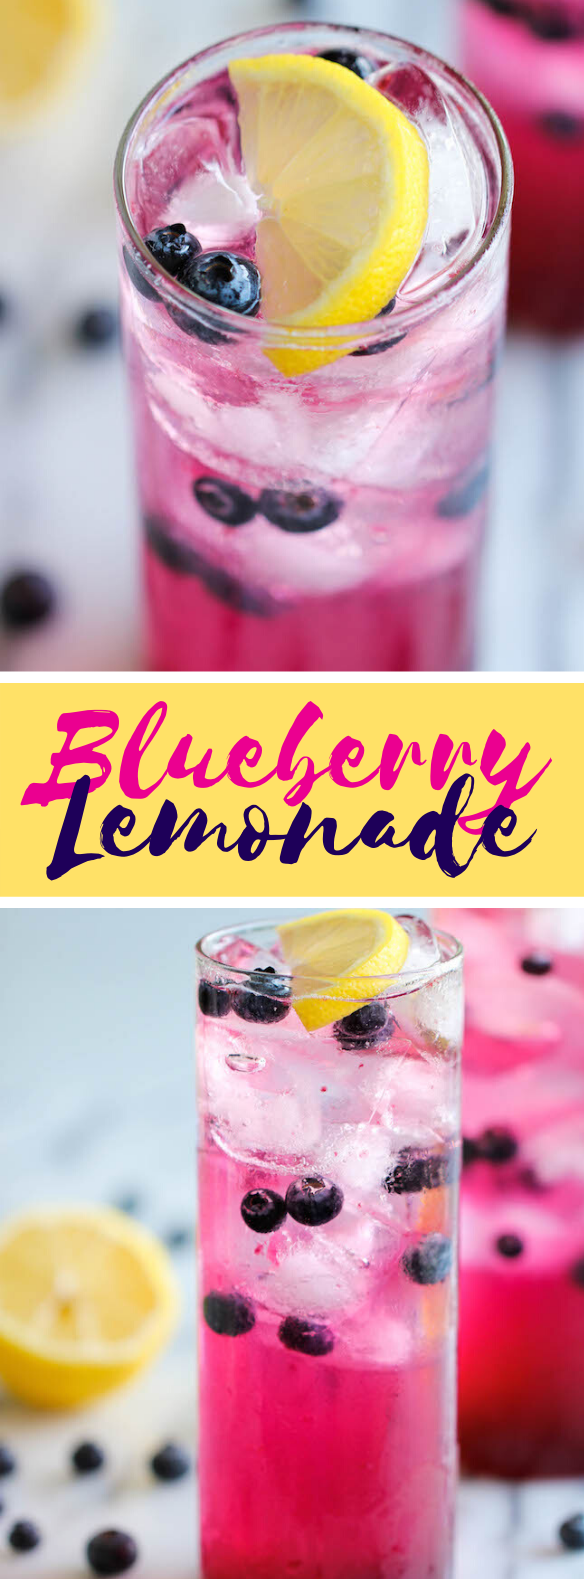 BLUEBERRY LEMONADE #drinks #syrup